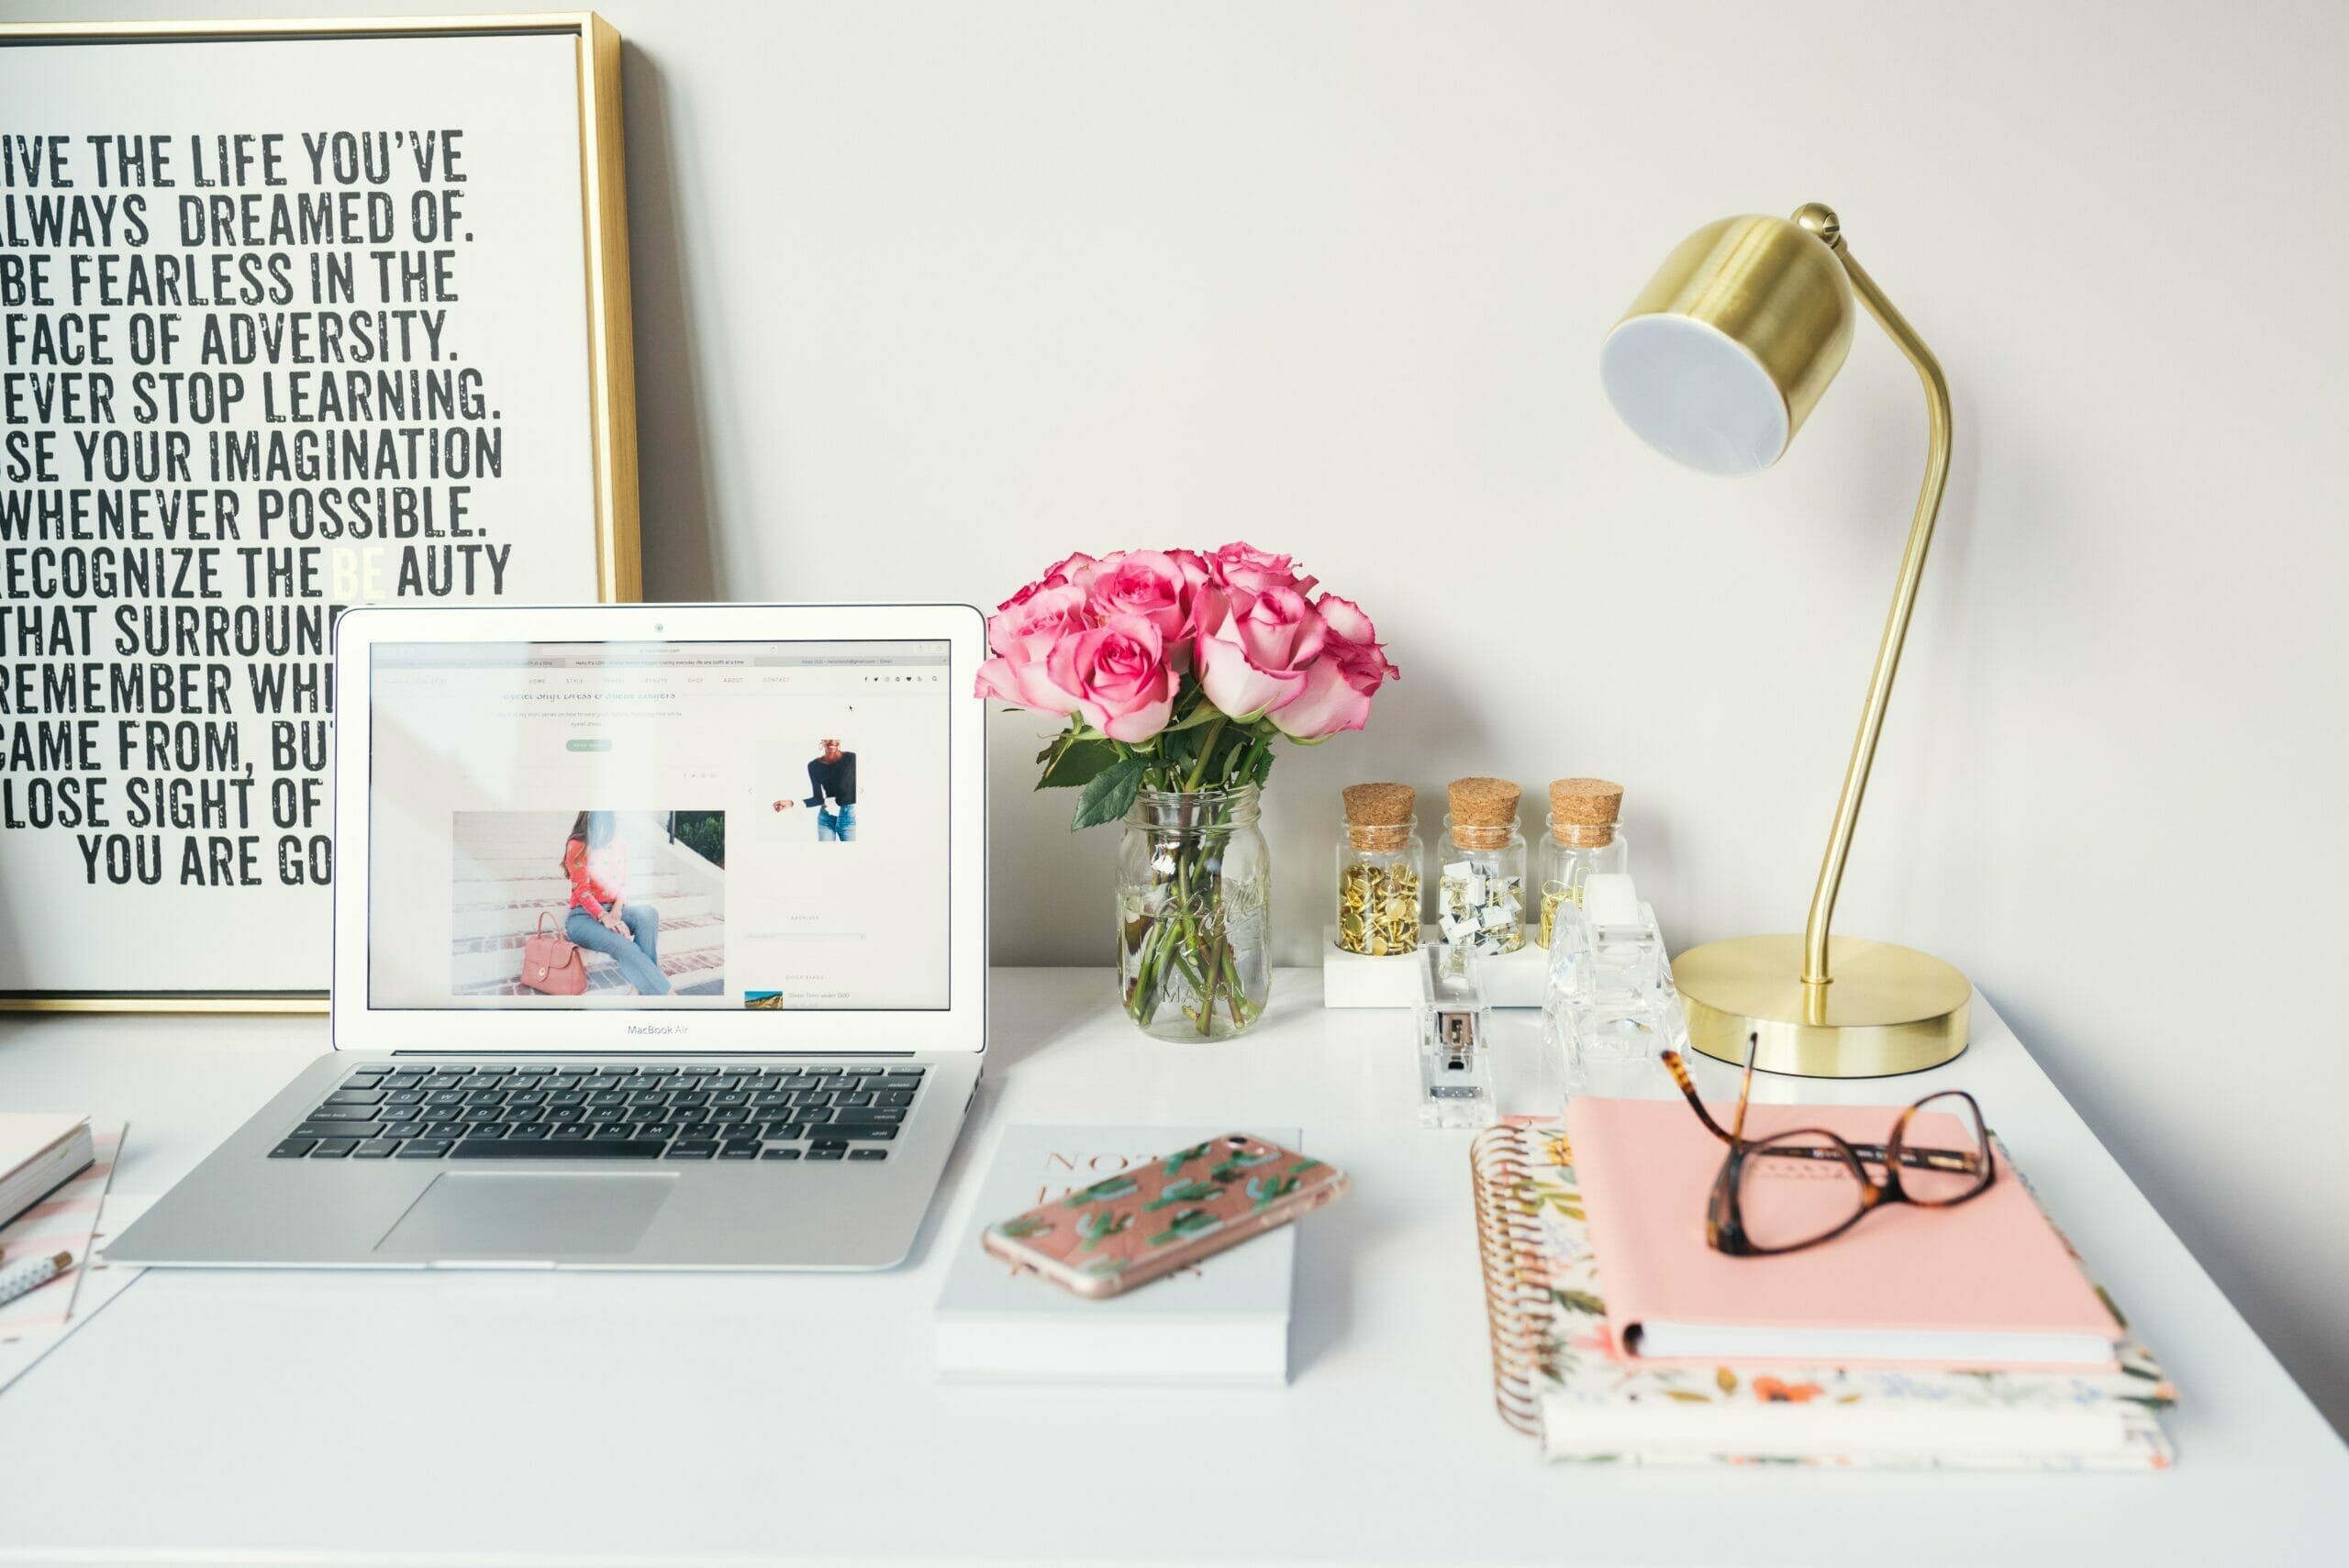 From $0 to $25,000 a Month: The Beginning (September 2020 Blogging Income Report) via @allamericanatlas